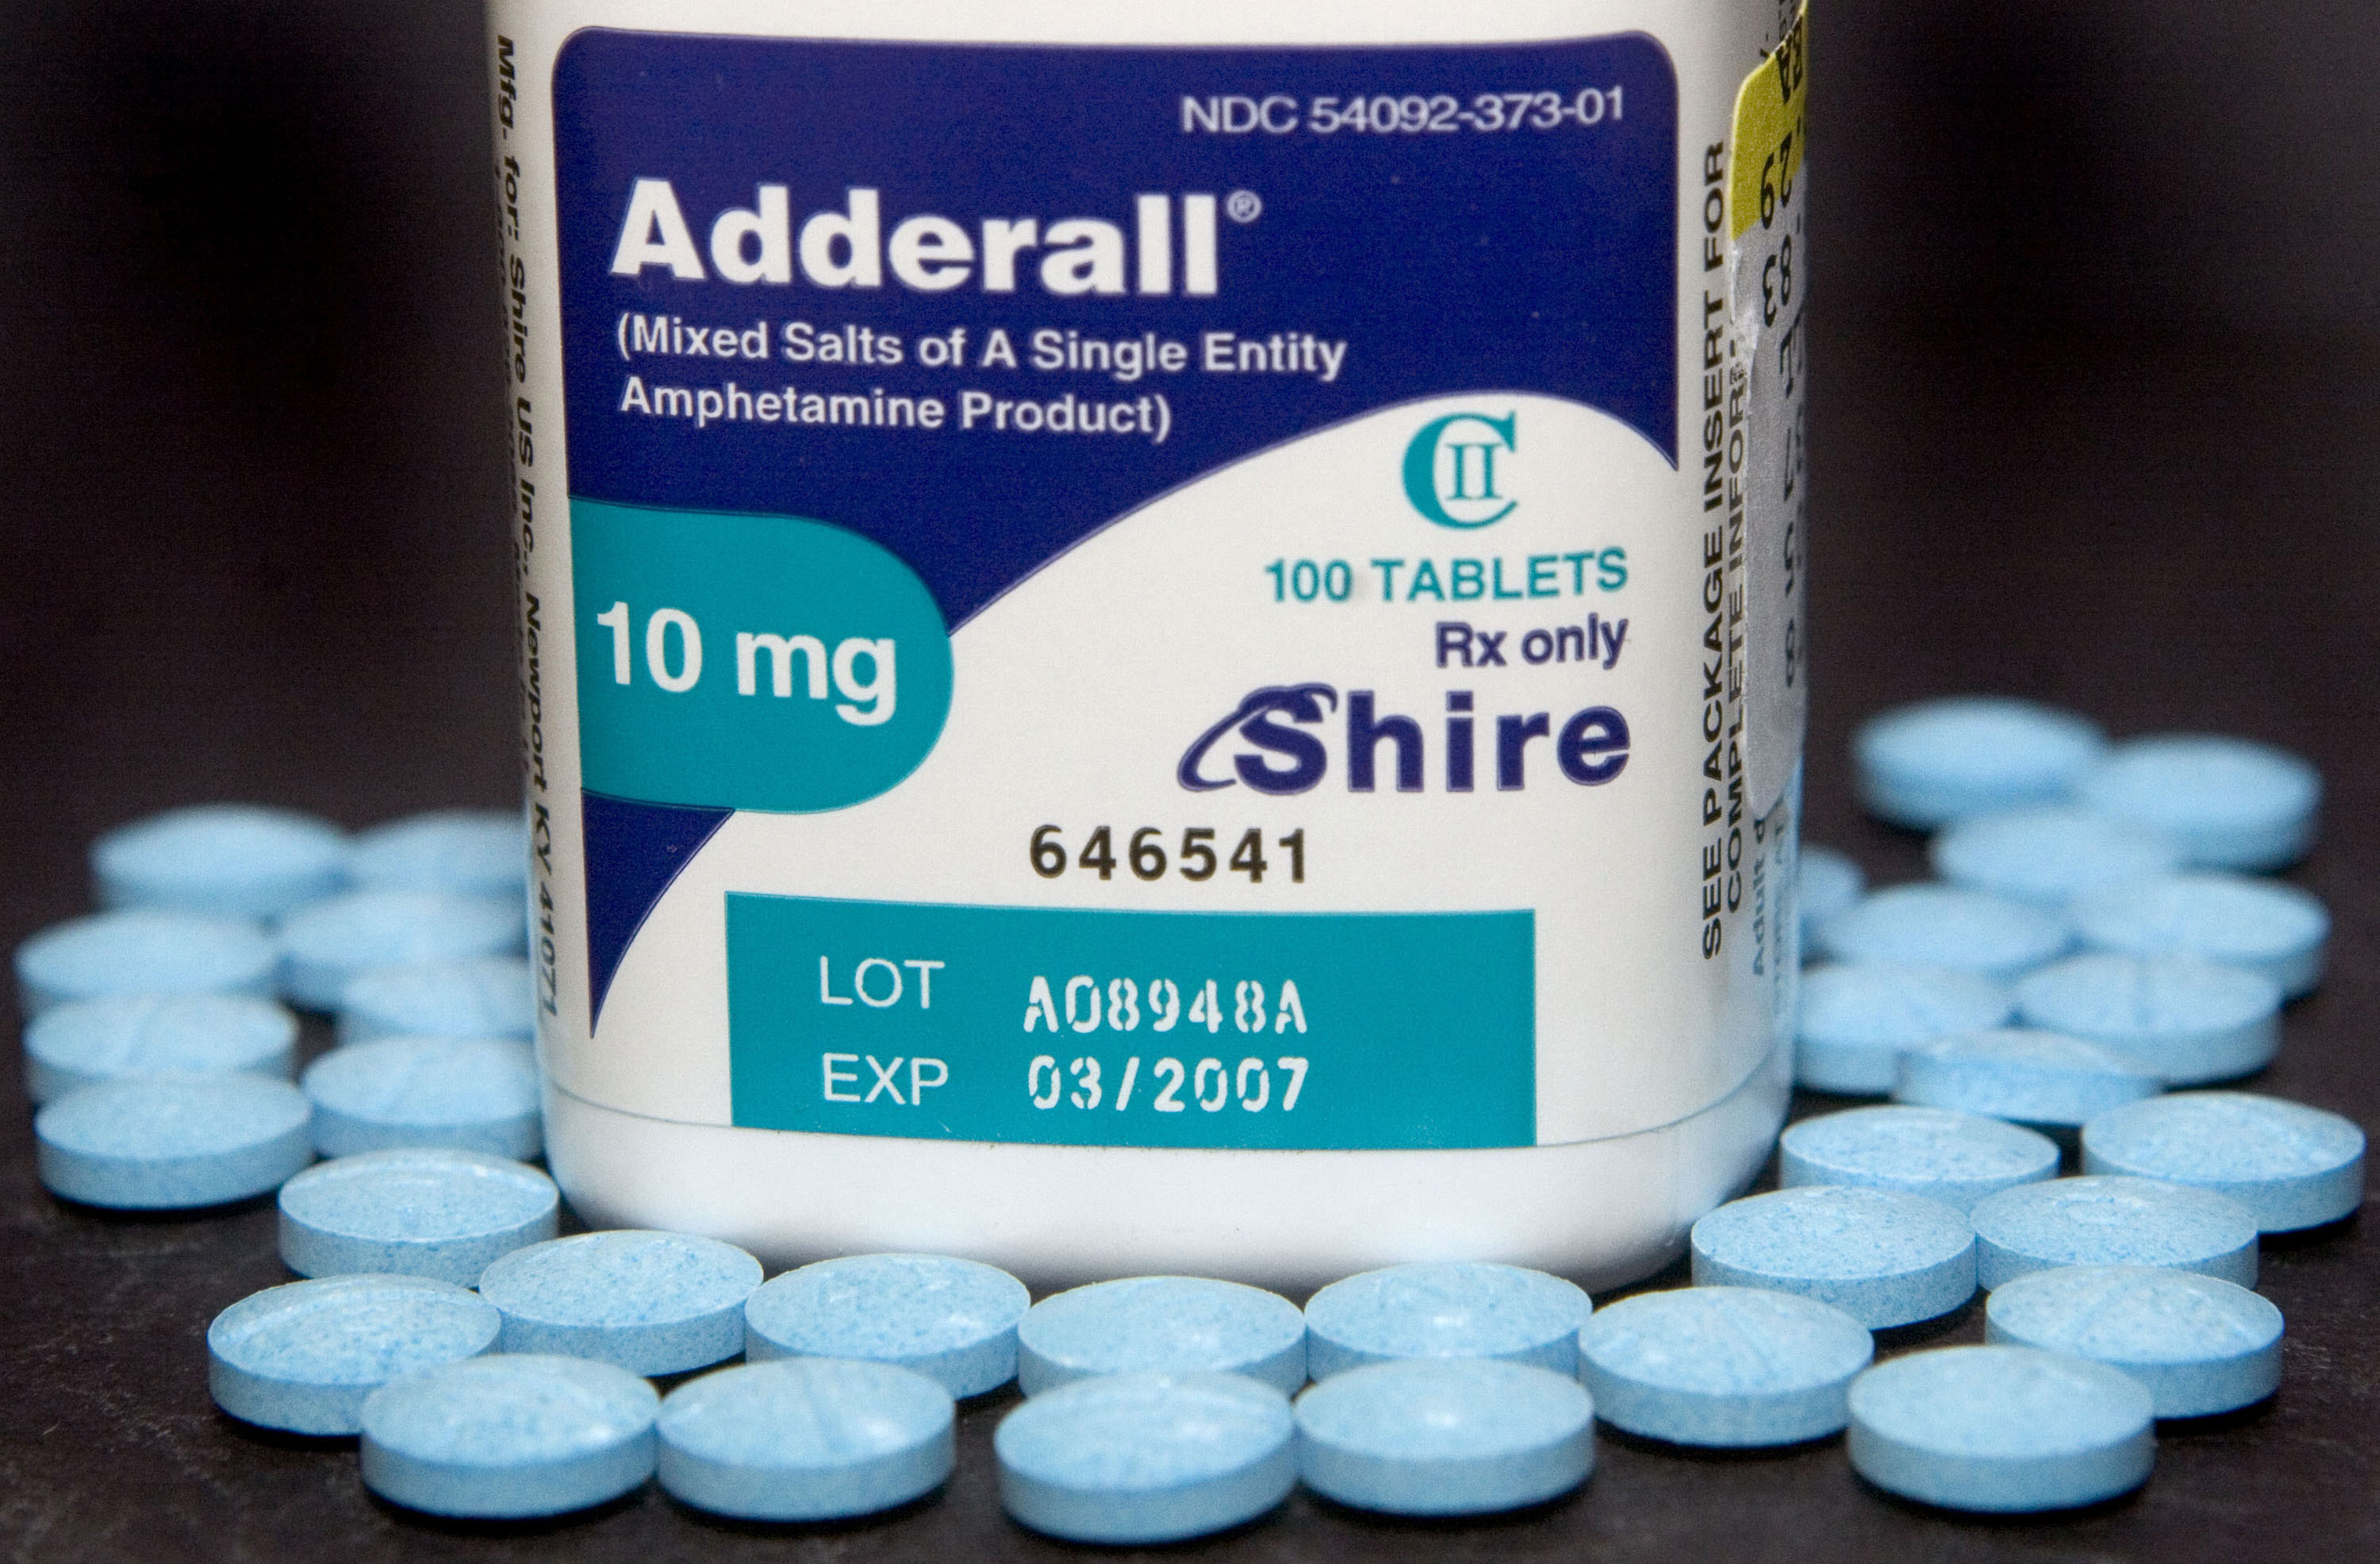 ADHD Medication Adderall